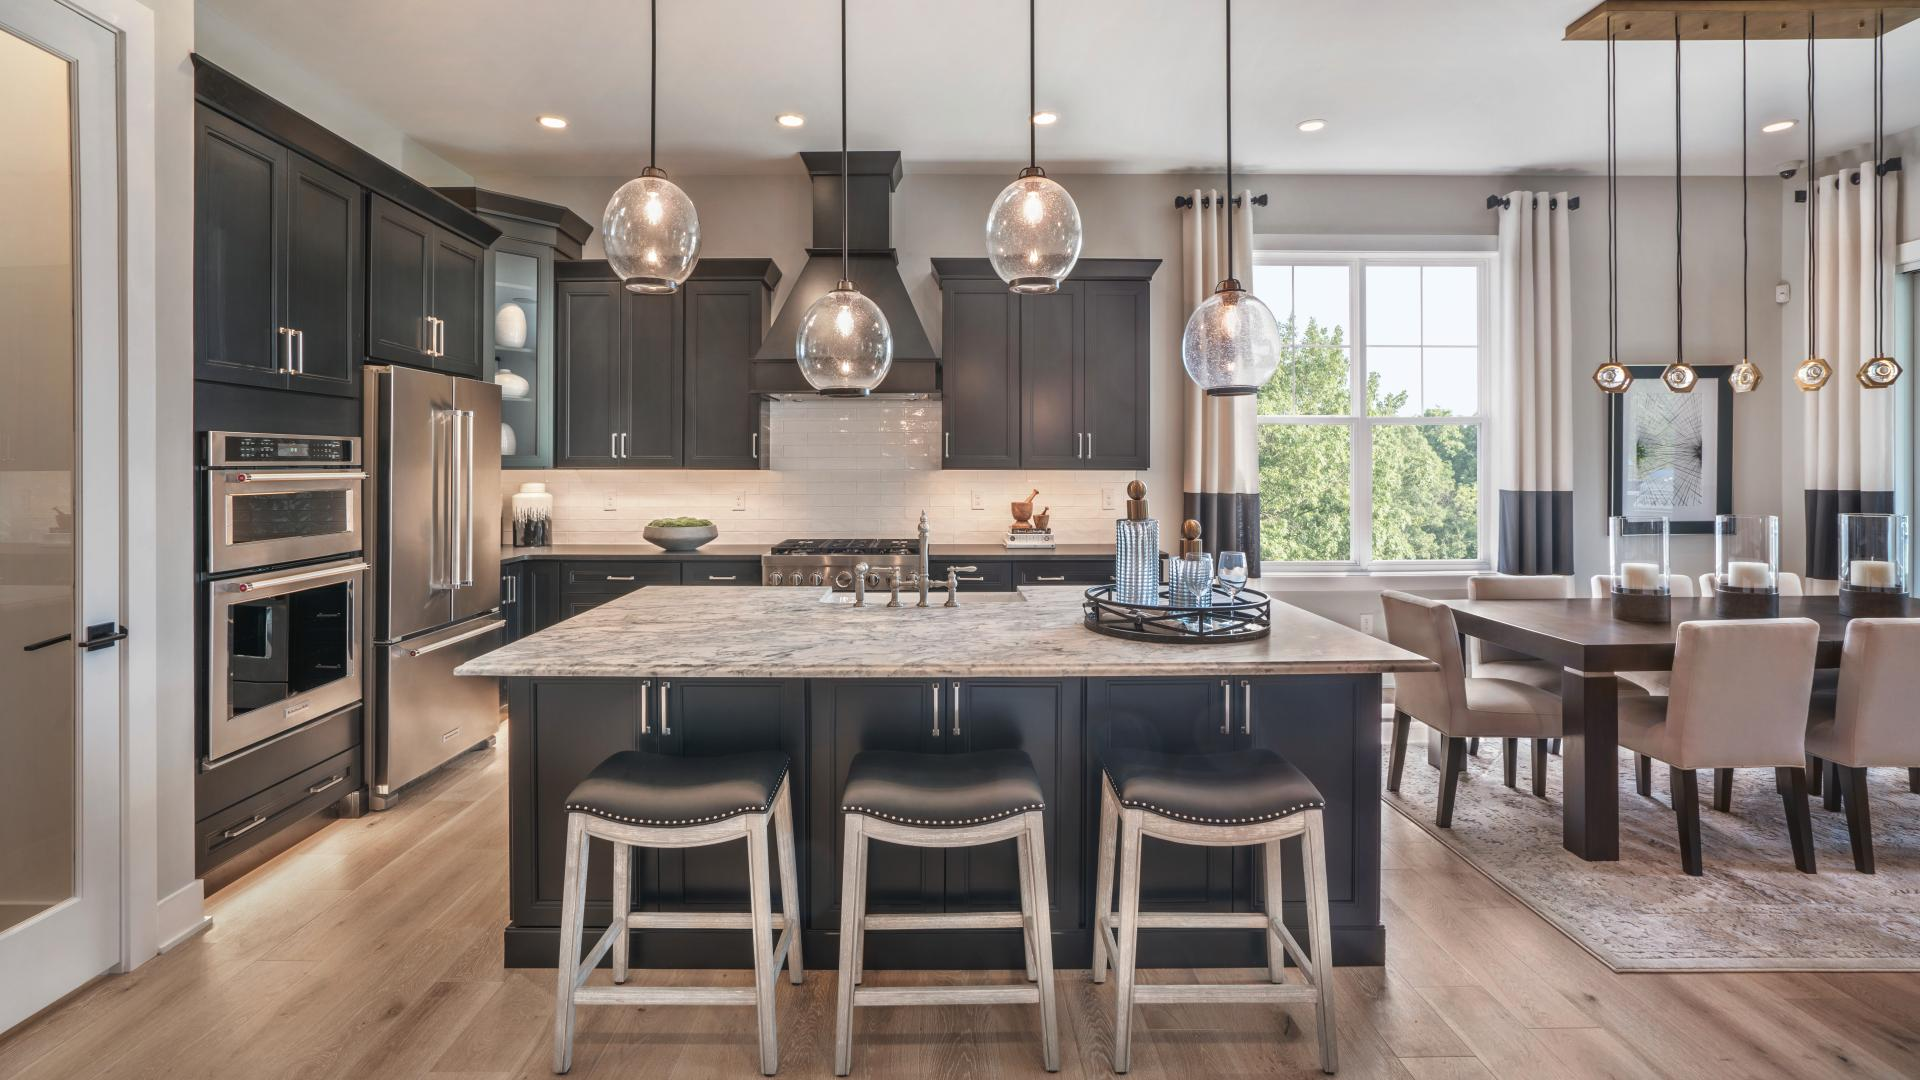 Odessa home design features a well-designed kitchen with large center island